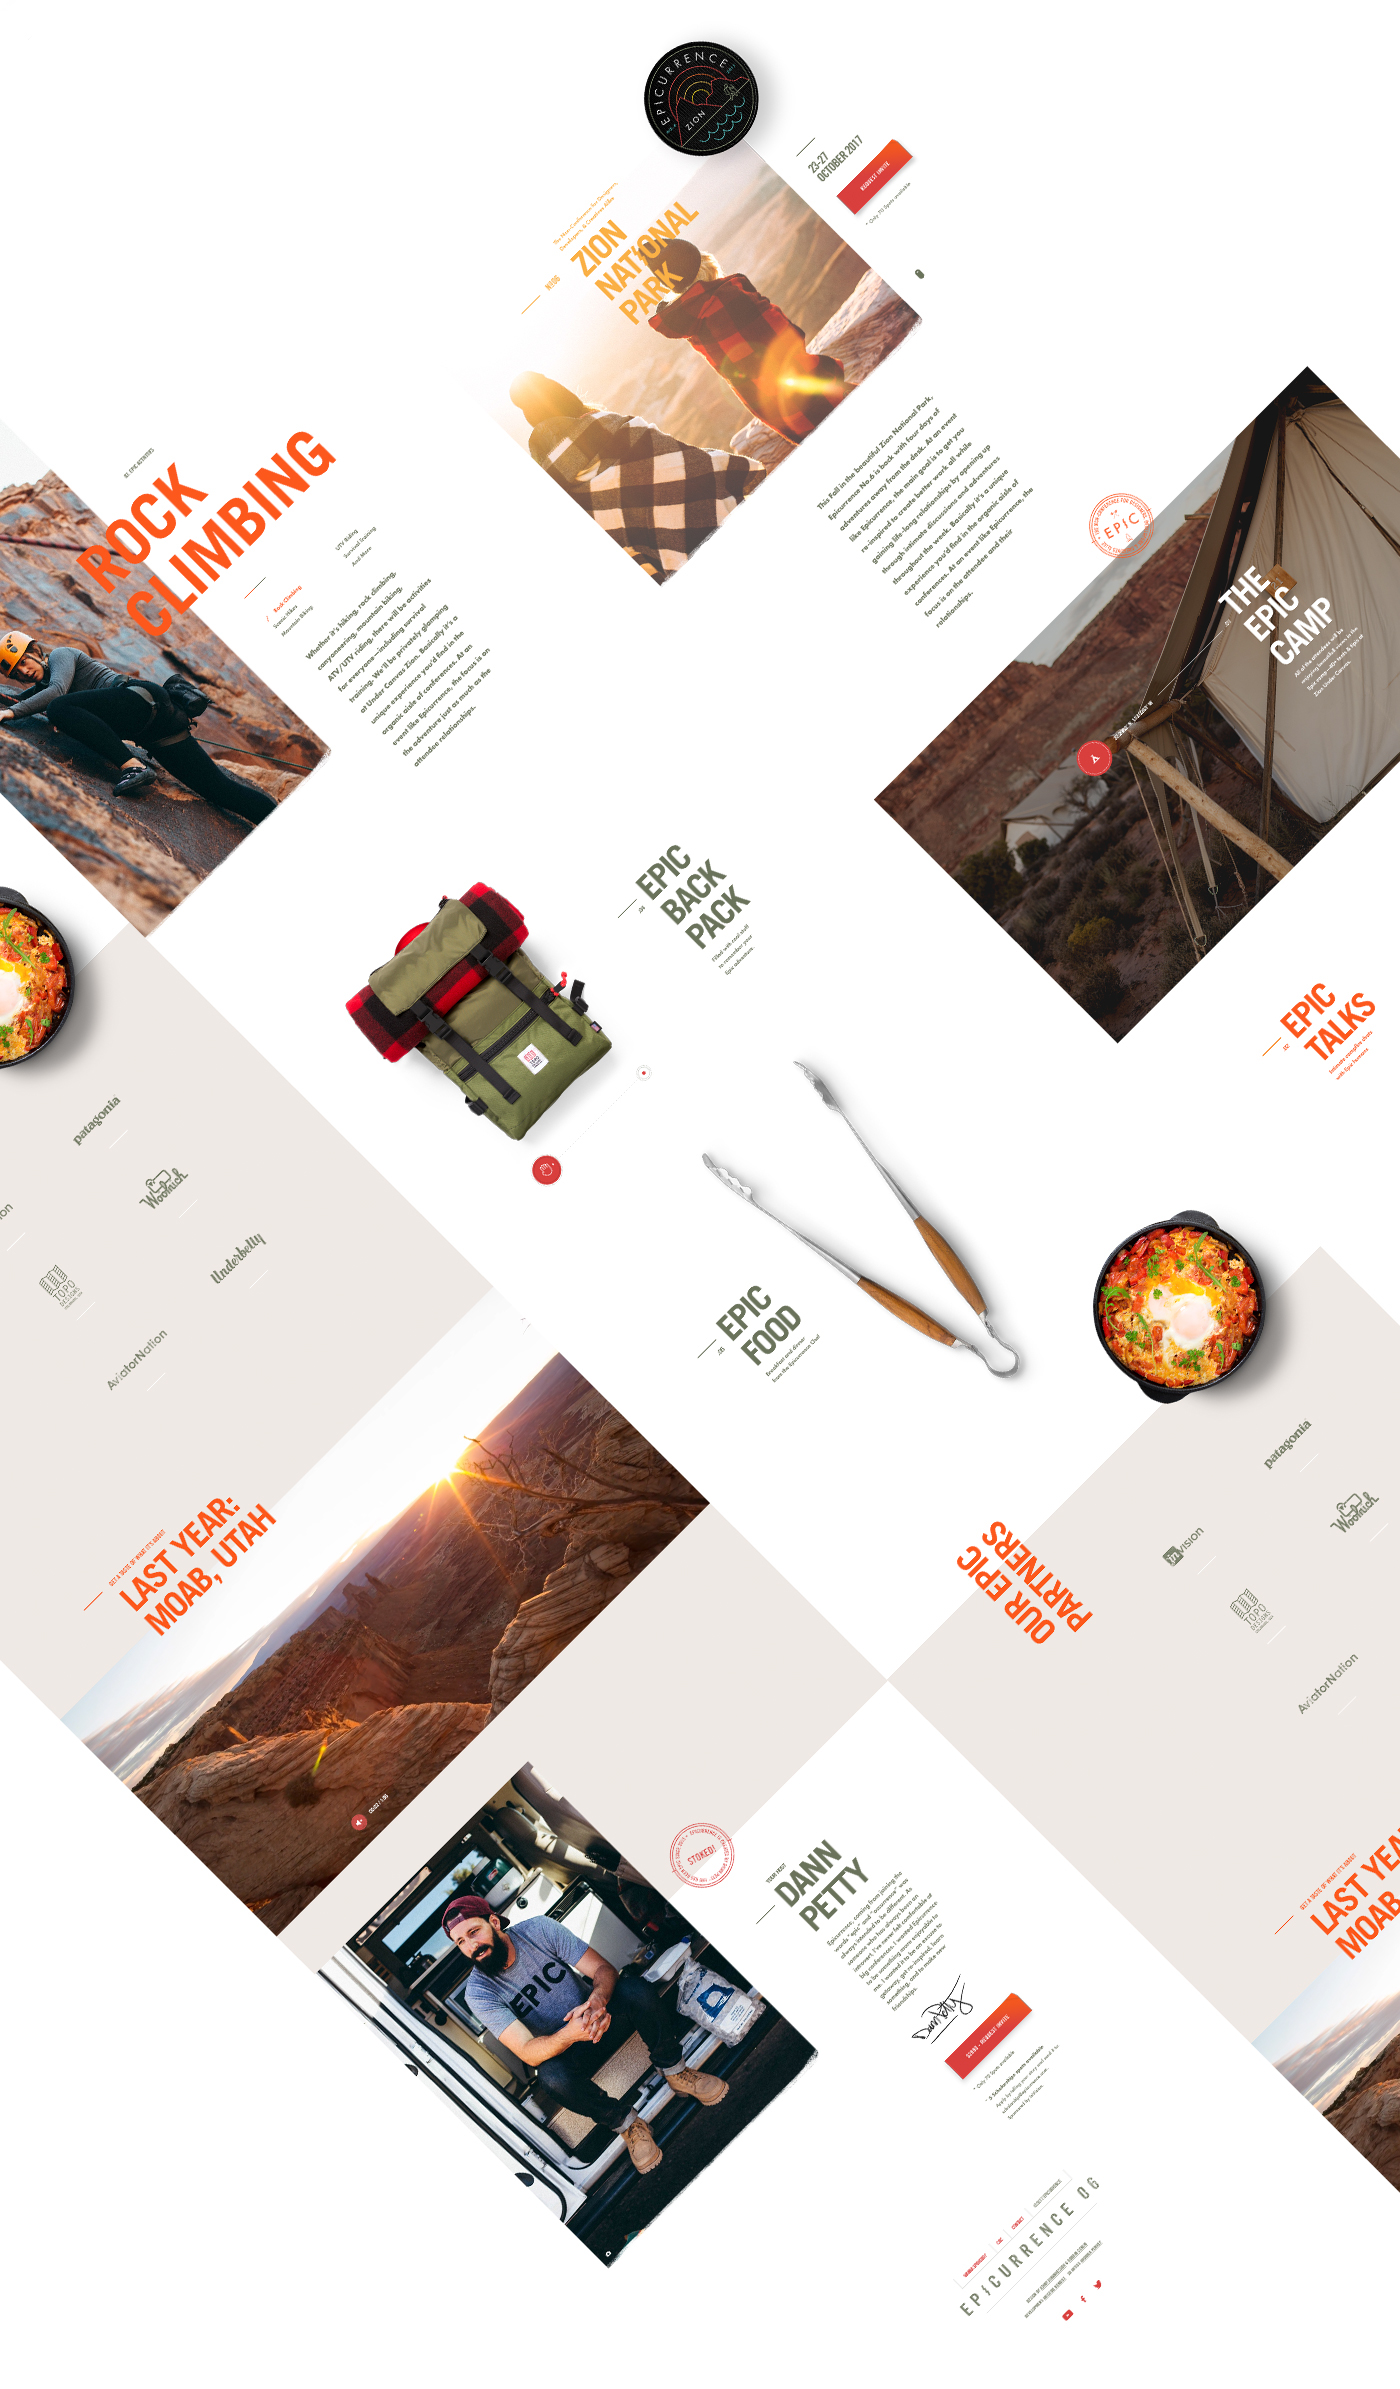 Epicurrence Event conference adventure camping paralax One Page badge